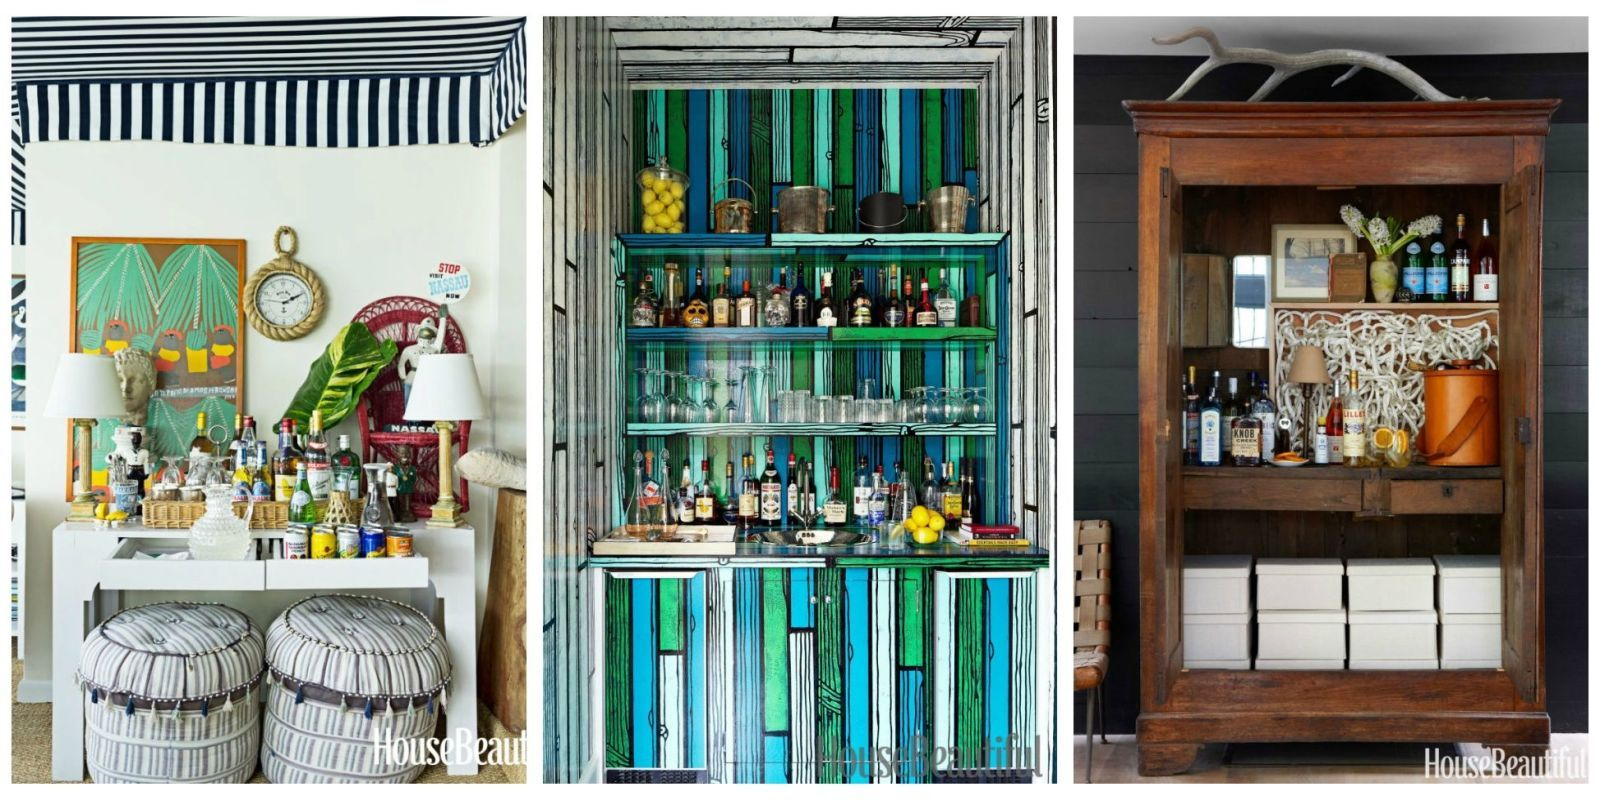 Shake Things Up With These Refreshing Design Ideas.